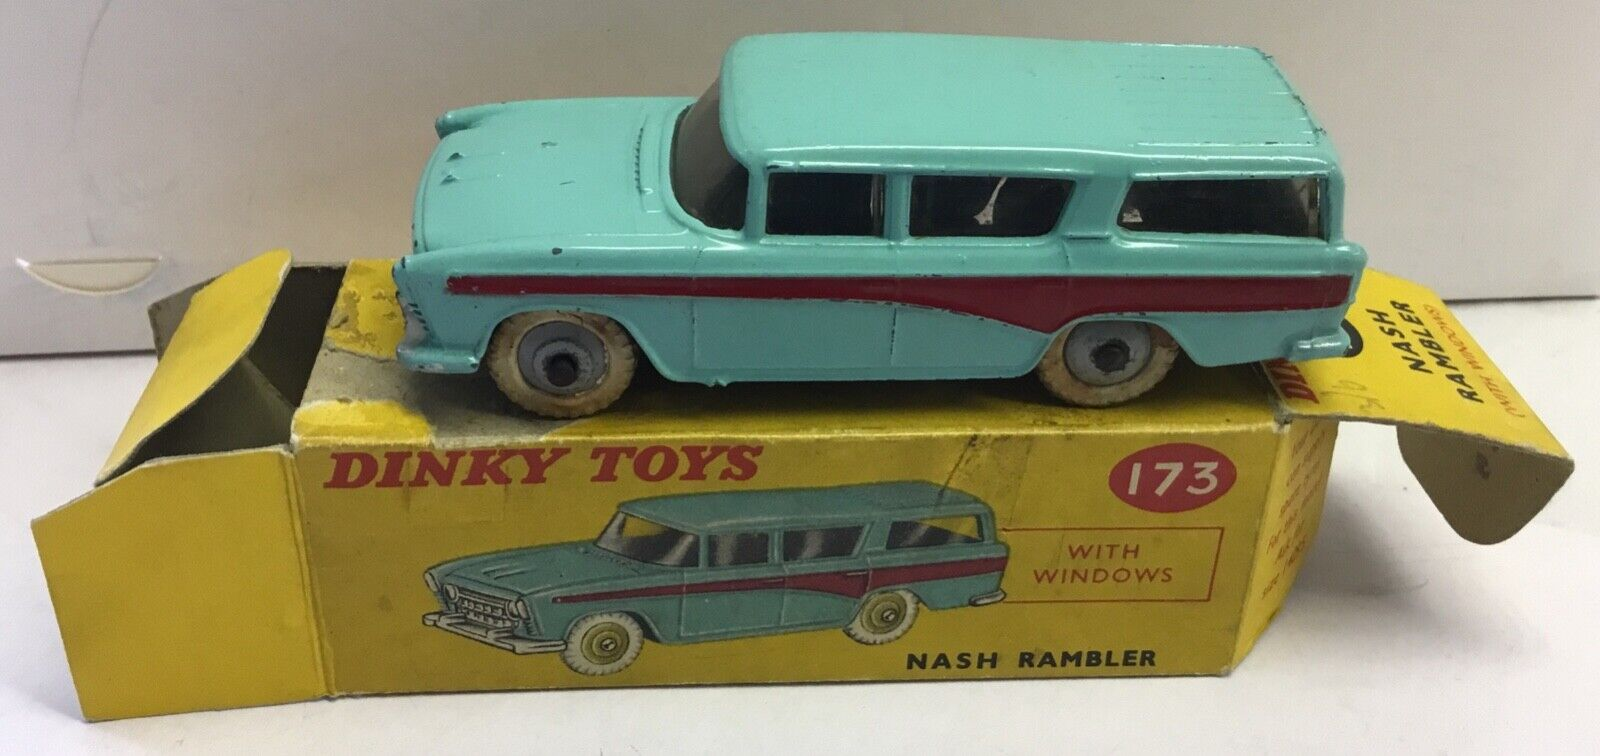 DINKY SpielzeugS 173. NASH RAMBLER .EXCELLENT  IN ORIGINAL BOX WITH WEAR